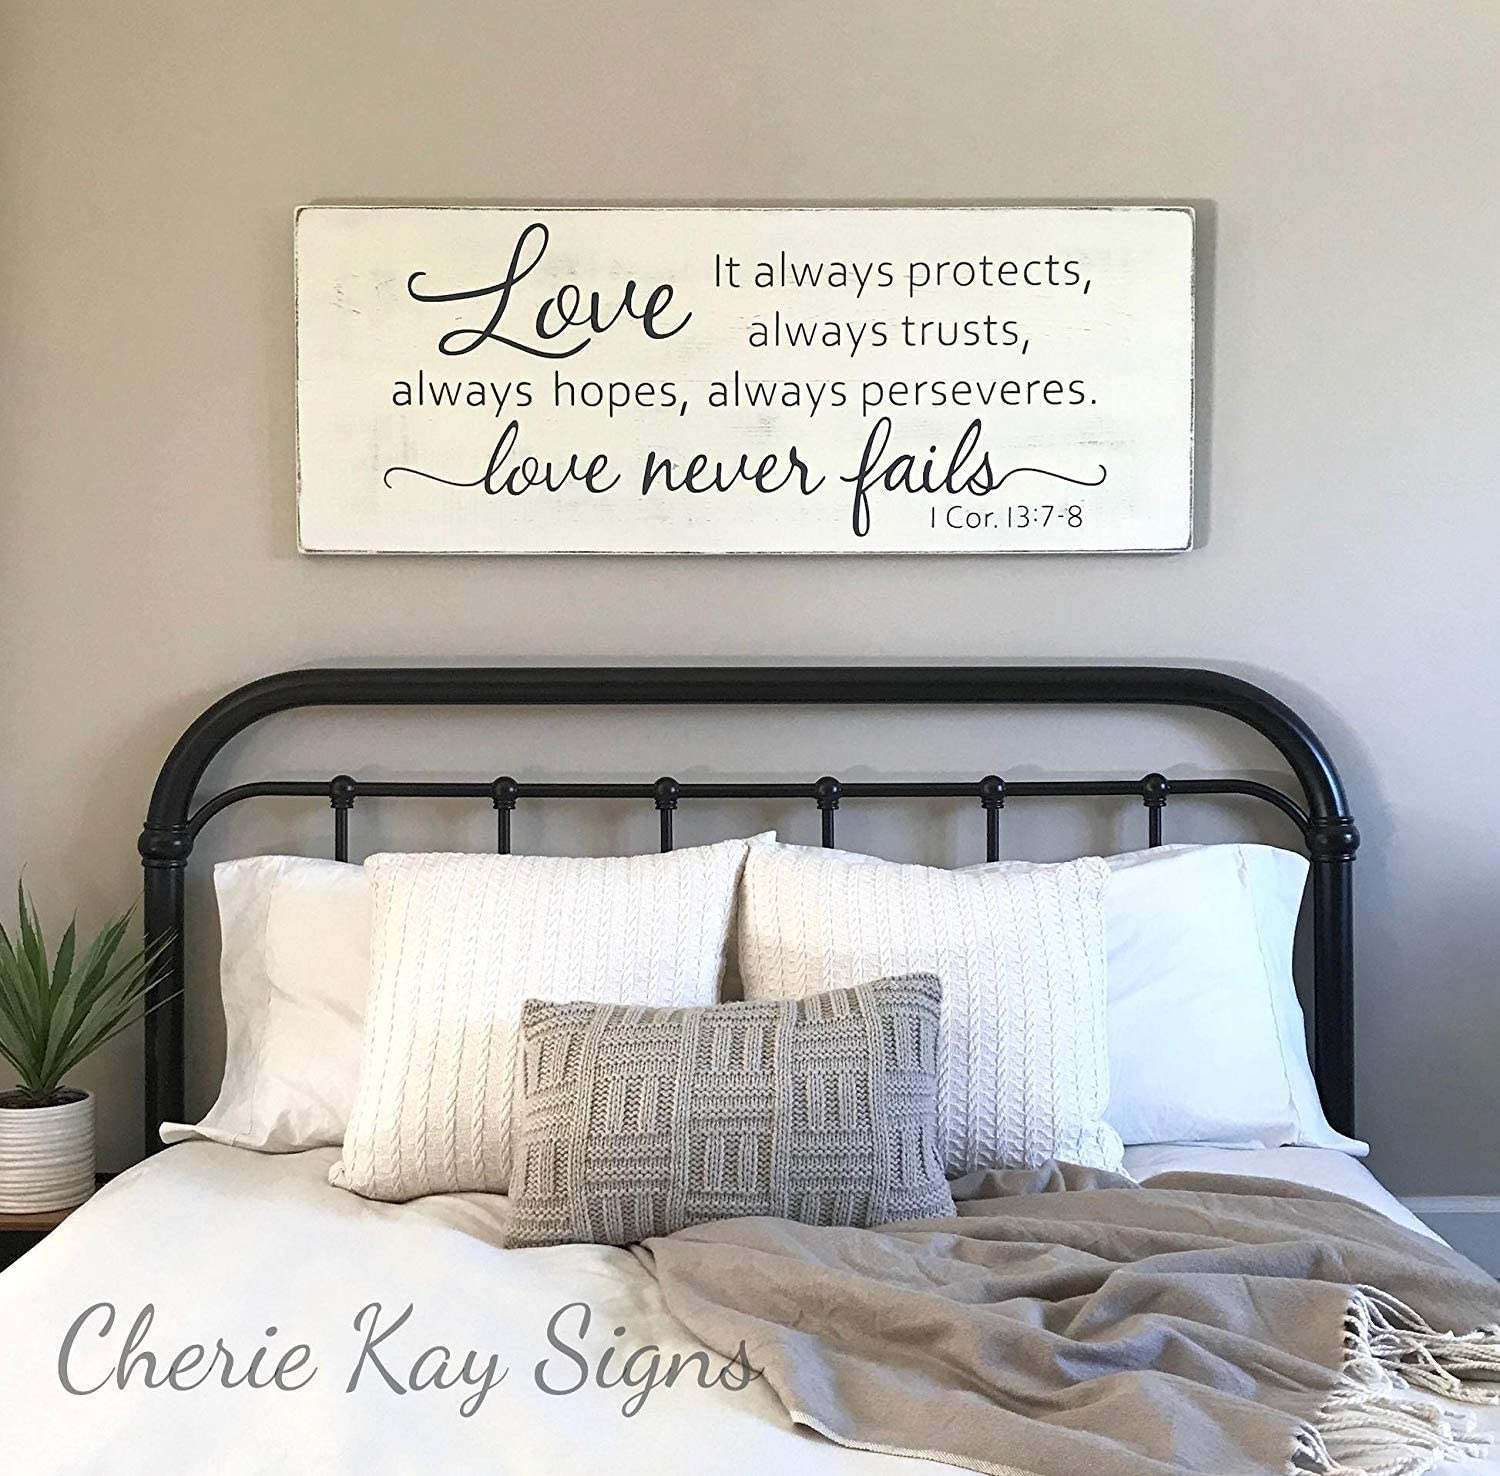 Amazon Com Emily Master Bedroom Love Never Fails 1 Corinthians 13 Rustic Bedroom Decor Farmhouse Bedroom Sayings Home Decor Wall Art Plaque Sign Presents Home Kitchen